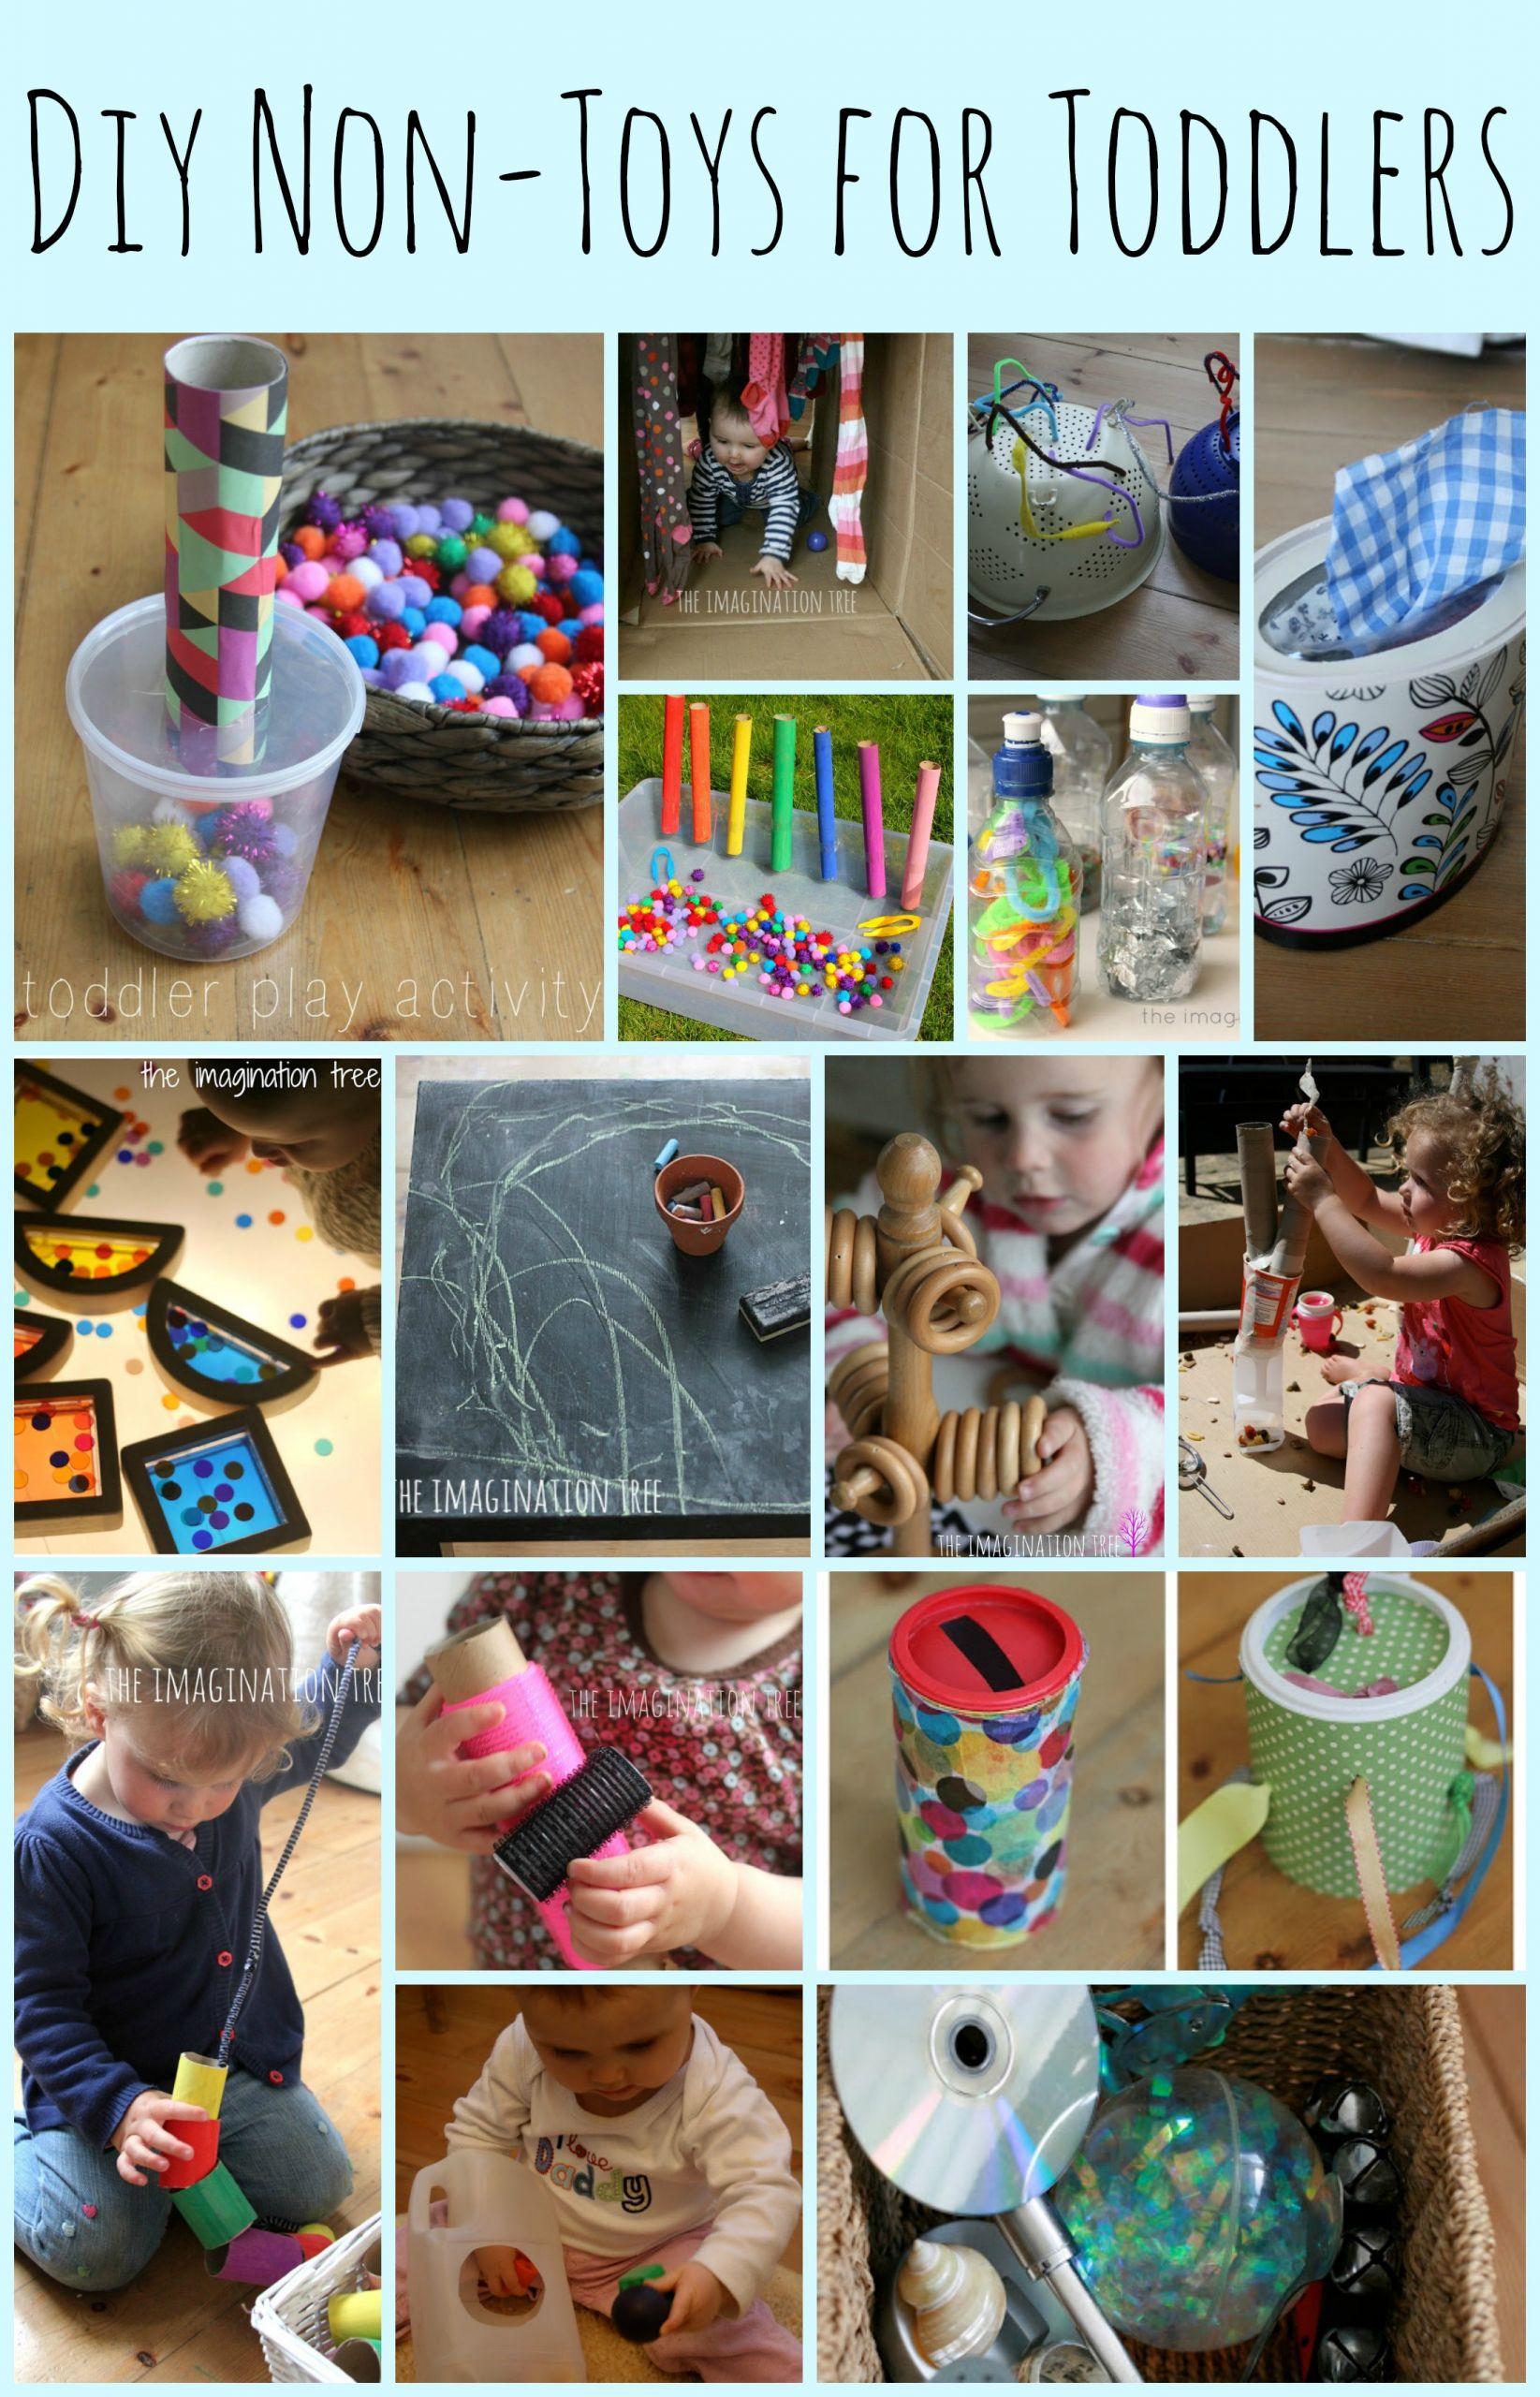 DIY Games For Toddlers  15 DIY Non Toys for Toddlers